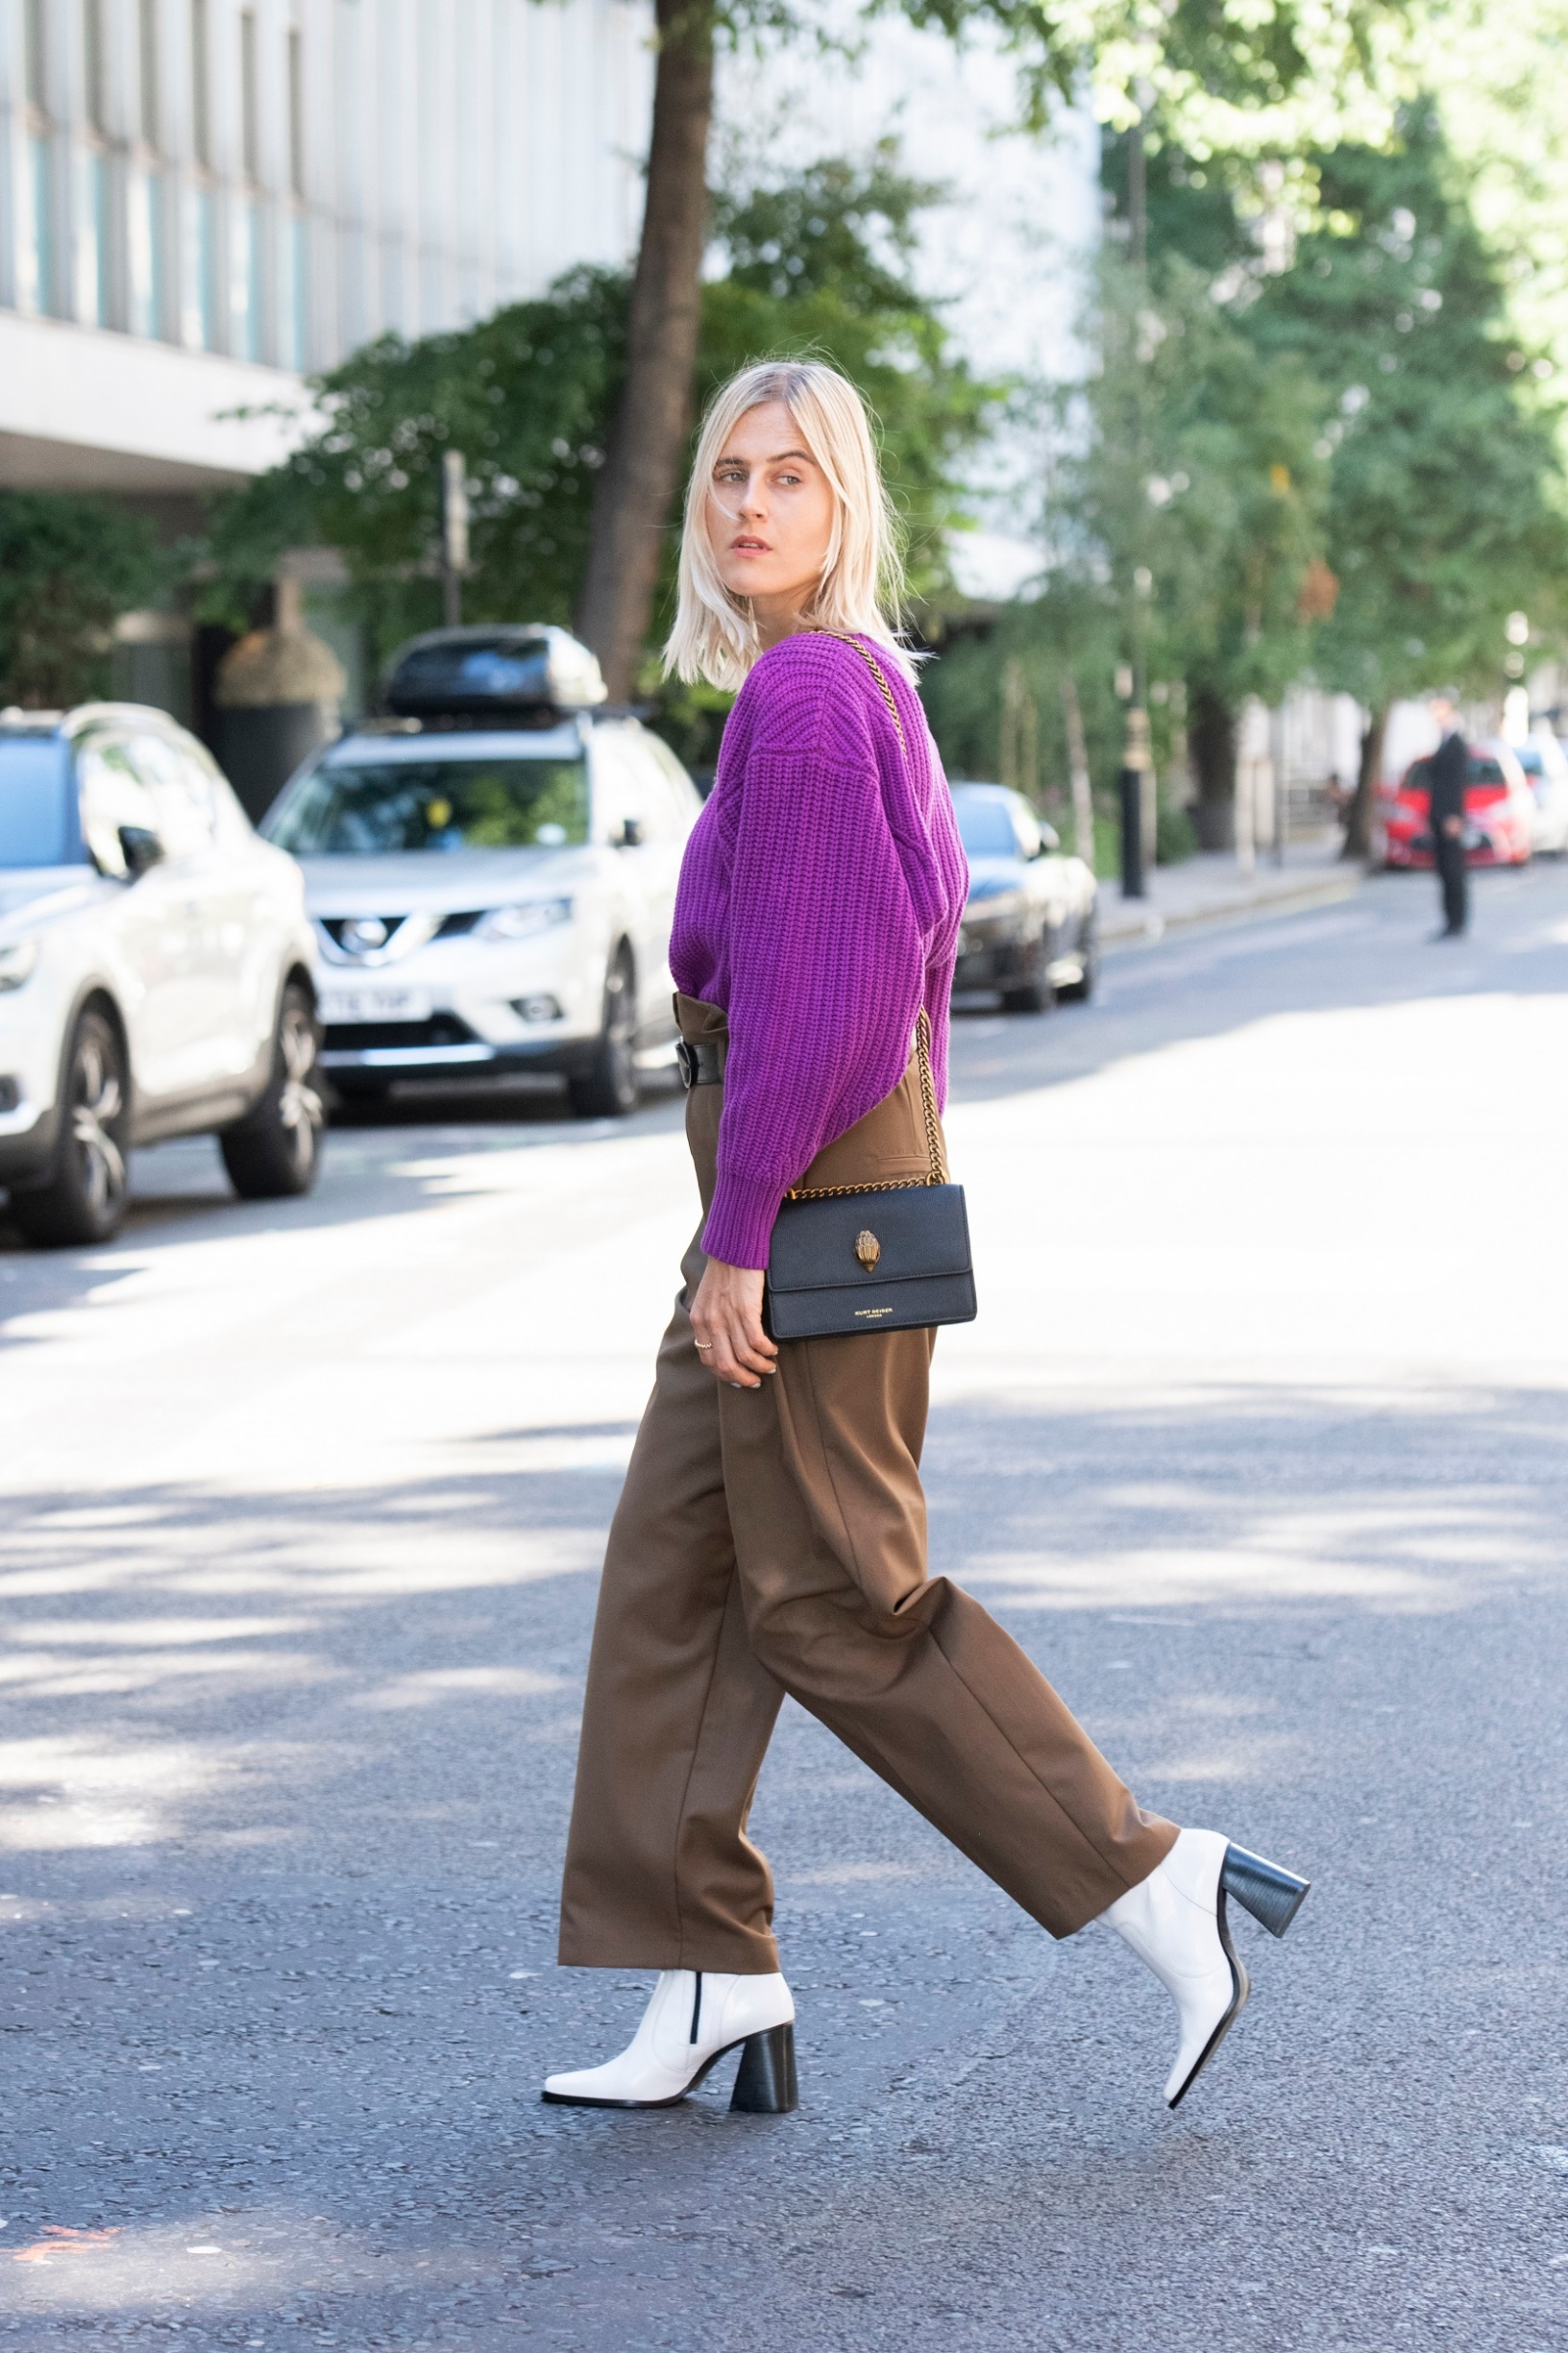 LONDON, ENGLAND - SEPTEMBER 15: Linda Tol wears Frankie shop trousers and belt, Loulou Studio sweater, Kurt Geiger boots and bag on September 15, 2019 in London, England. (Photo by Kirstin Sinclair/Getty Images for Kurt Geiger)